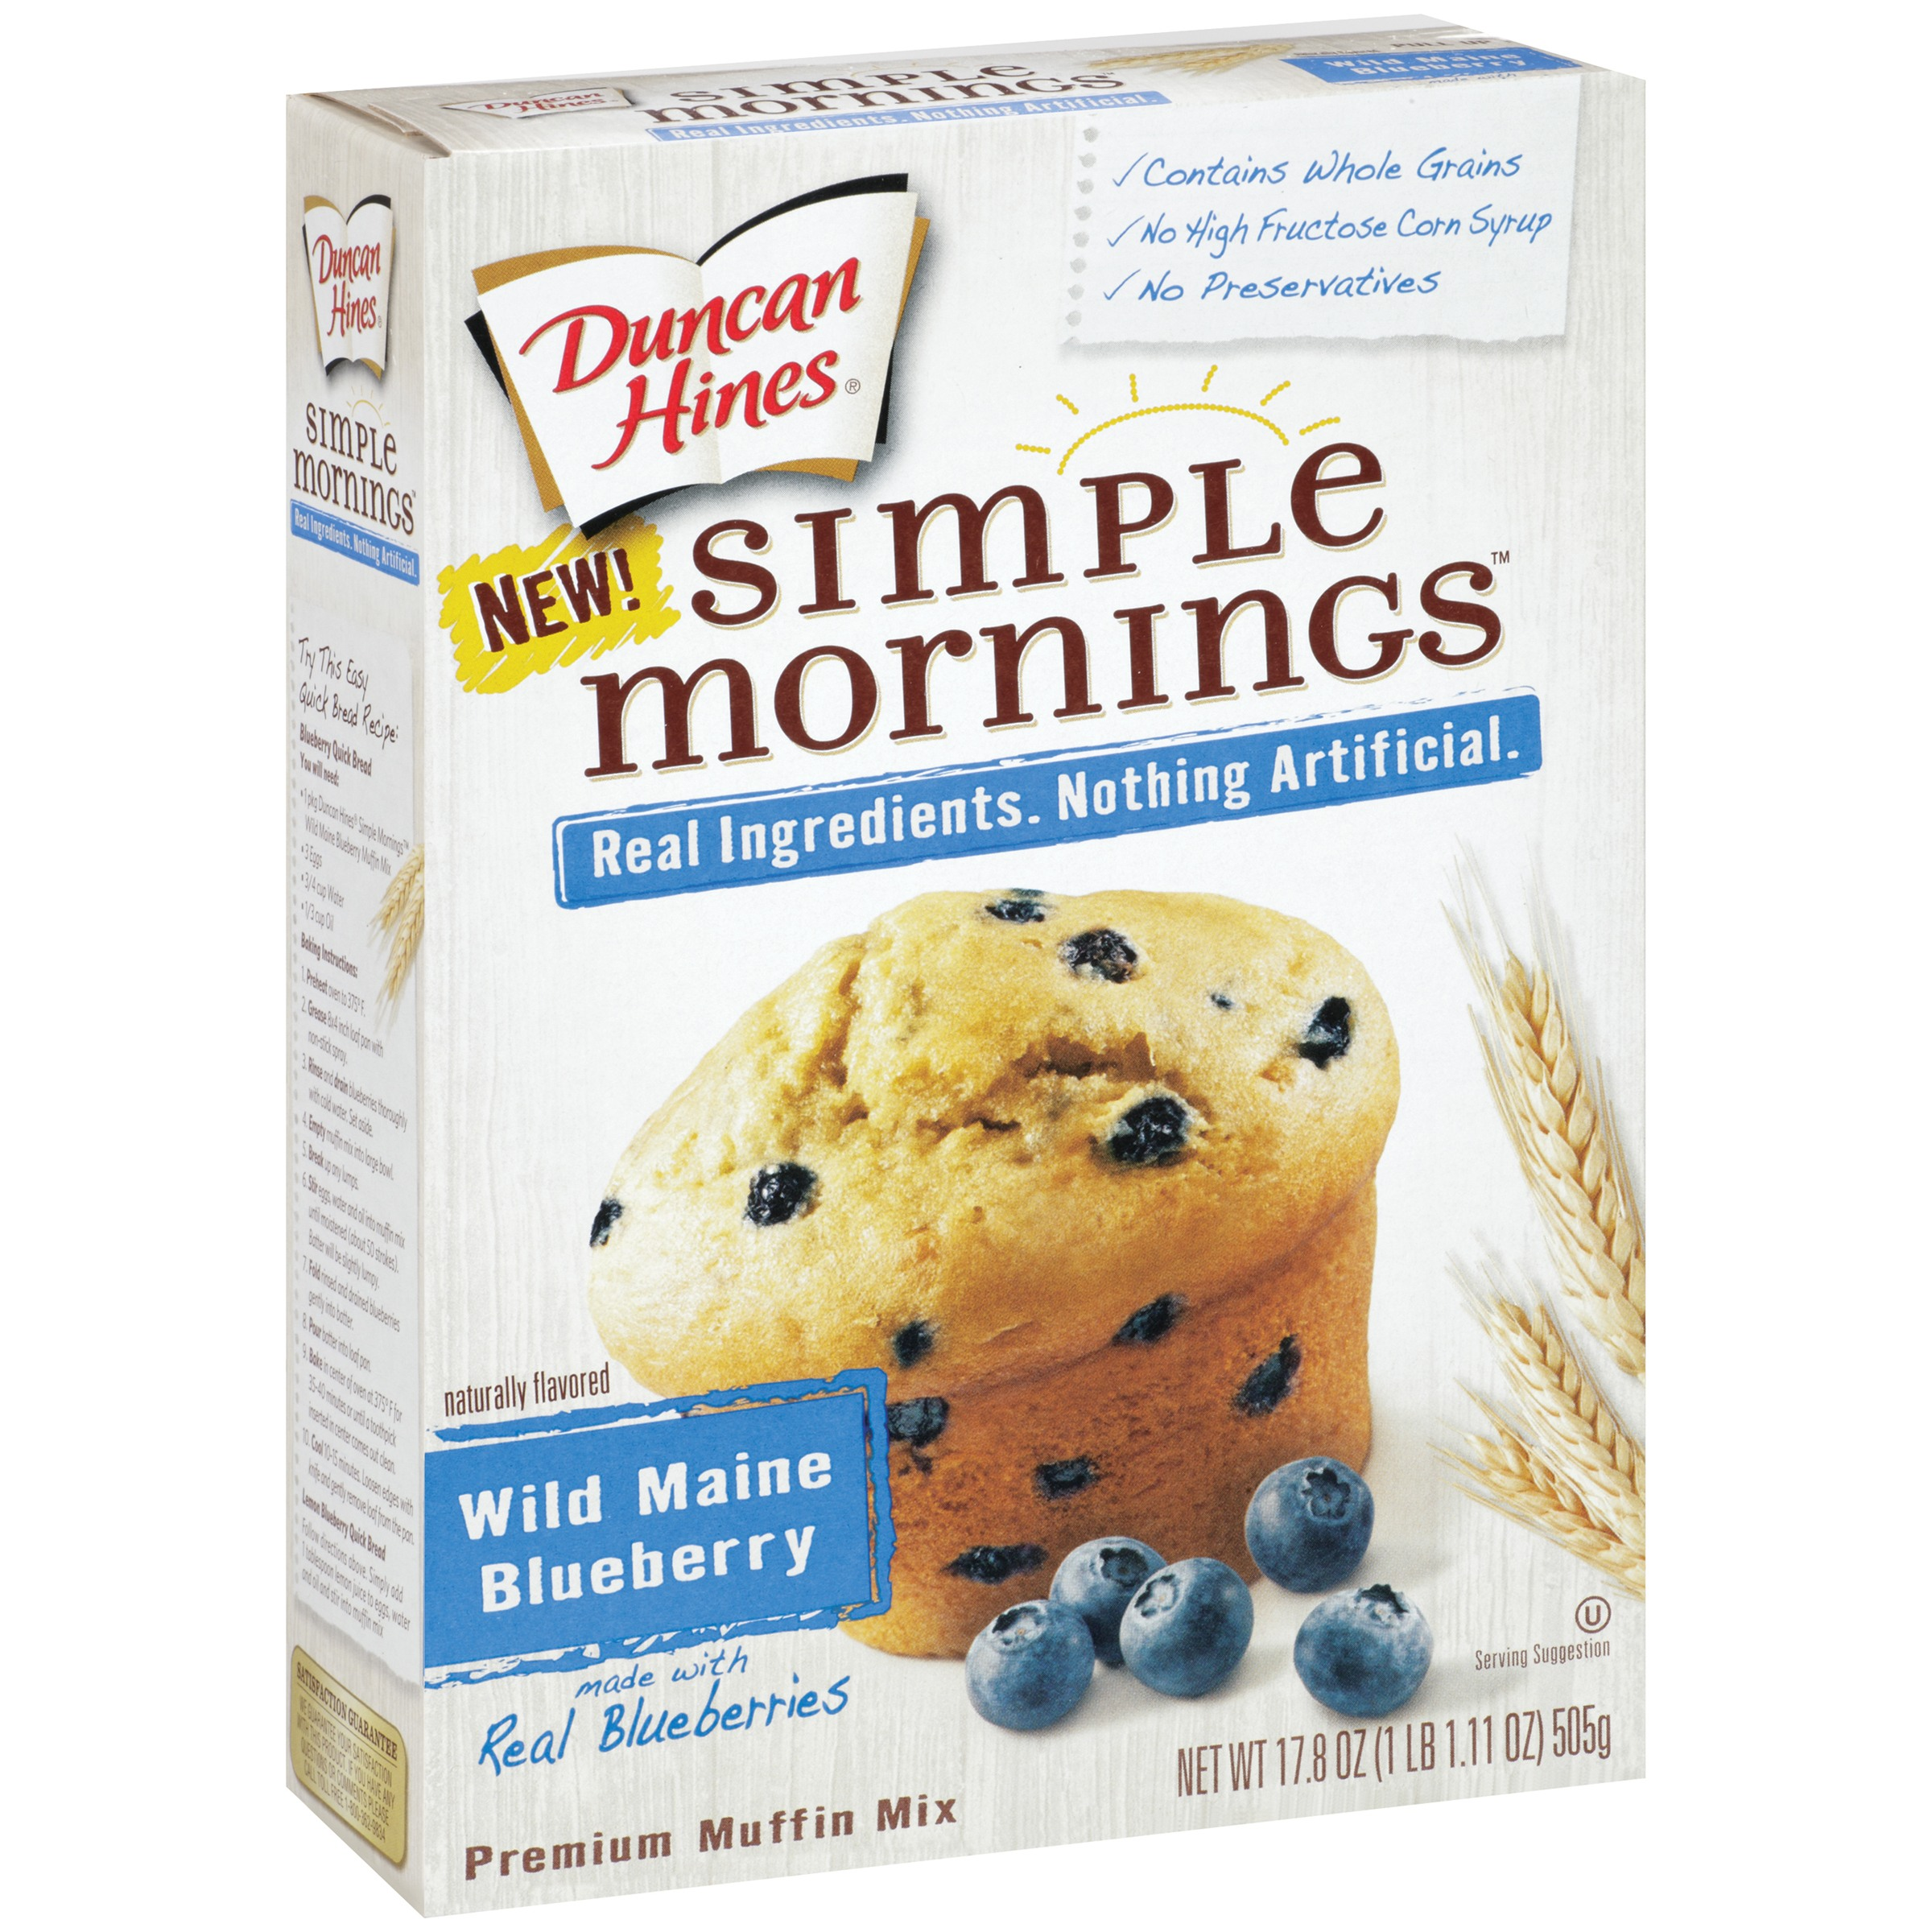 Duncan Hines Simple Mornings Muffin Mix Wild Maine Blueberry, 17.8 OZ by Pinnacle Foods Group LLC